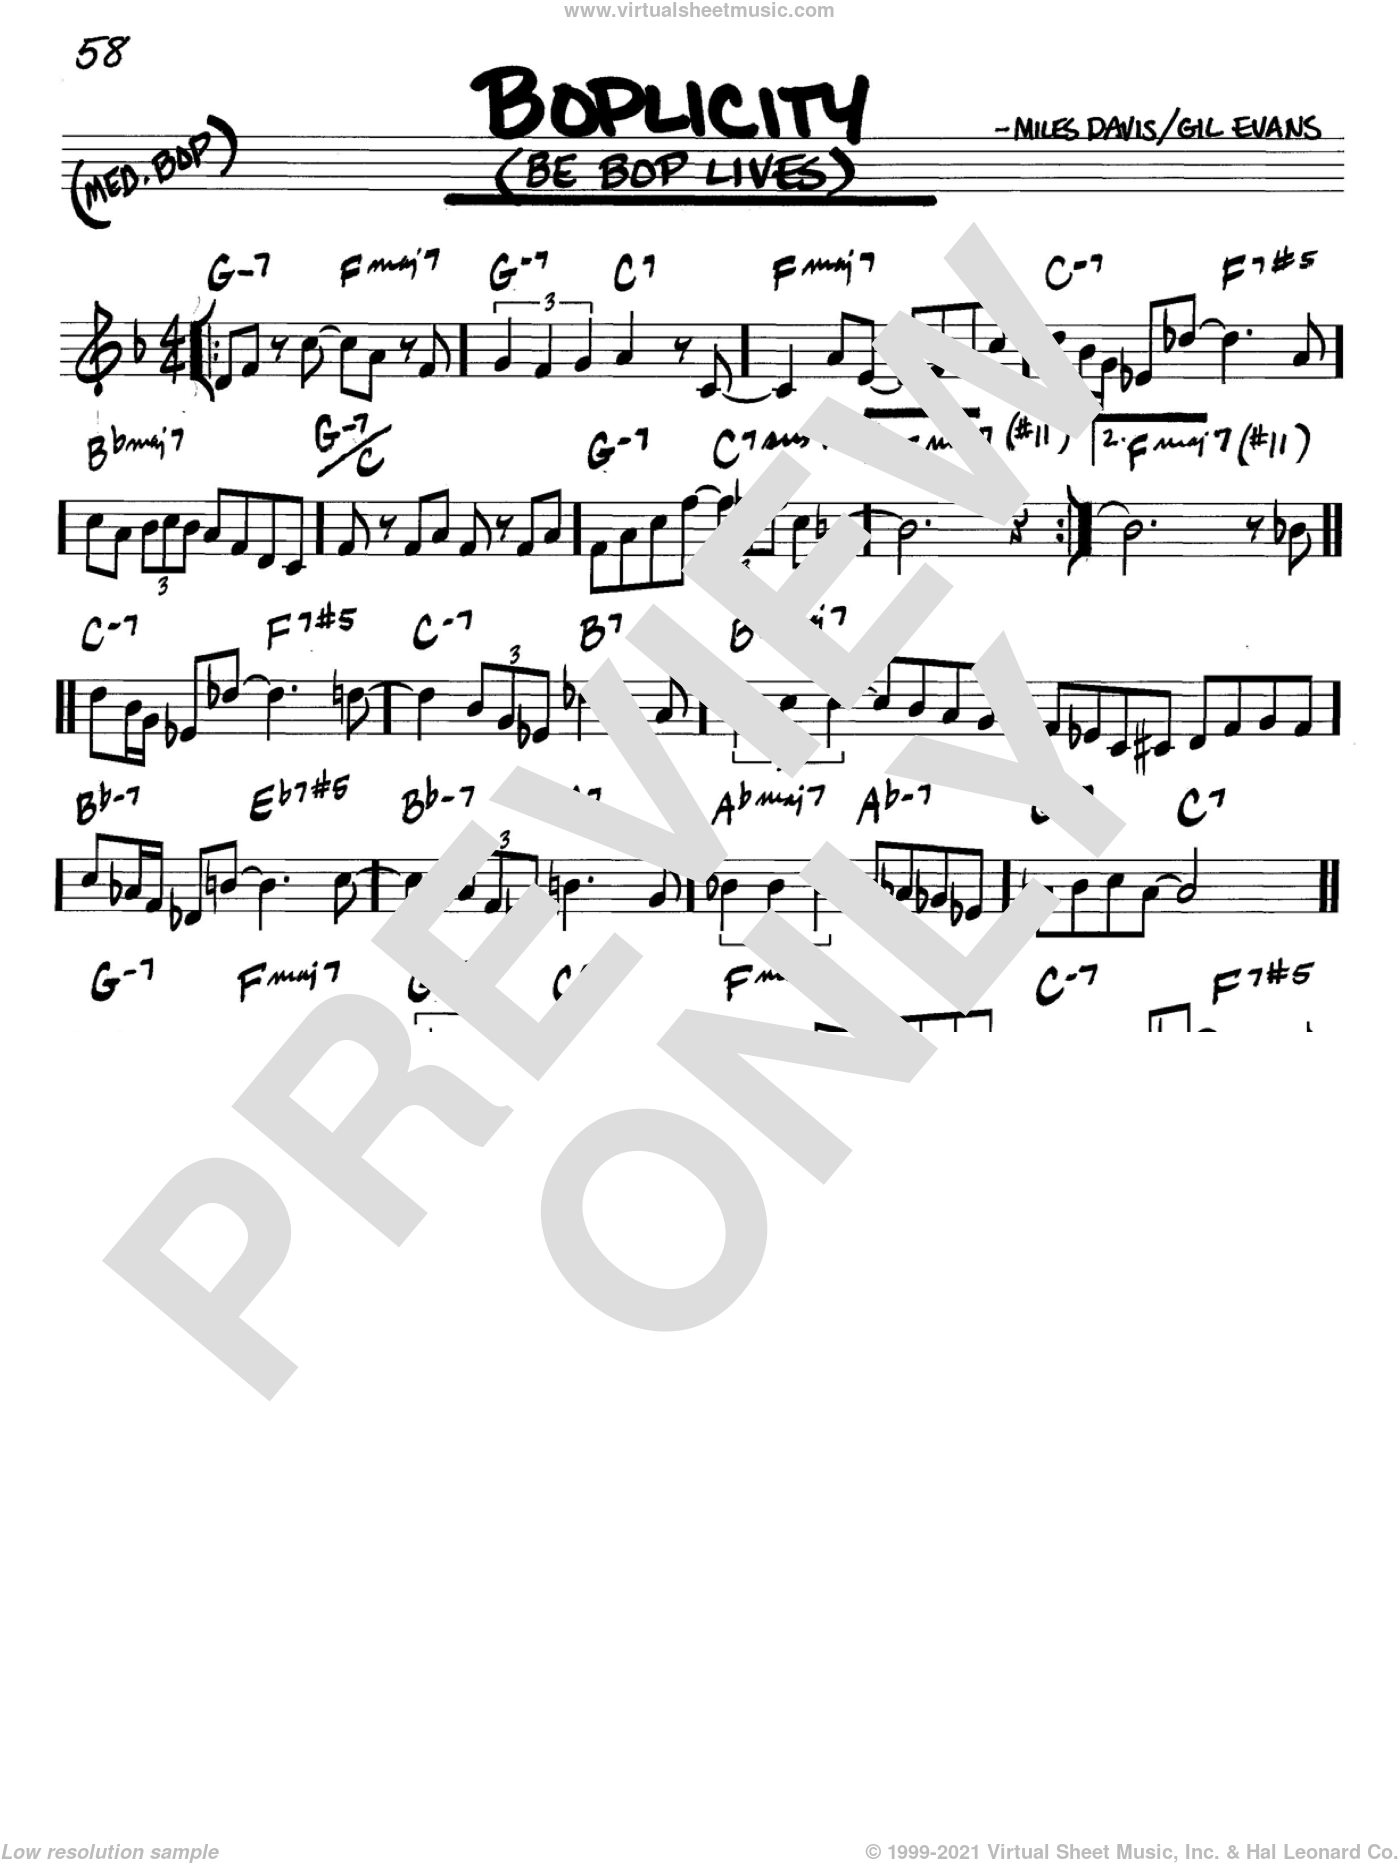 Boplicity (Be Bop Lives) sheet music for voice and other instruments (C) by Miles Davis. Score Image Preview.